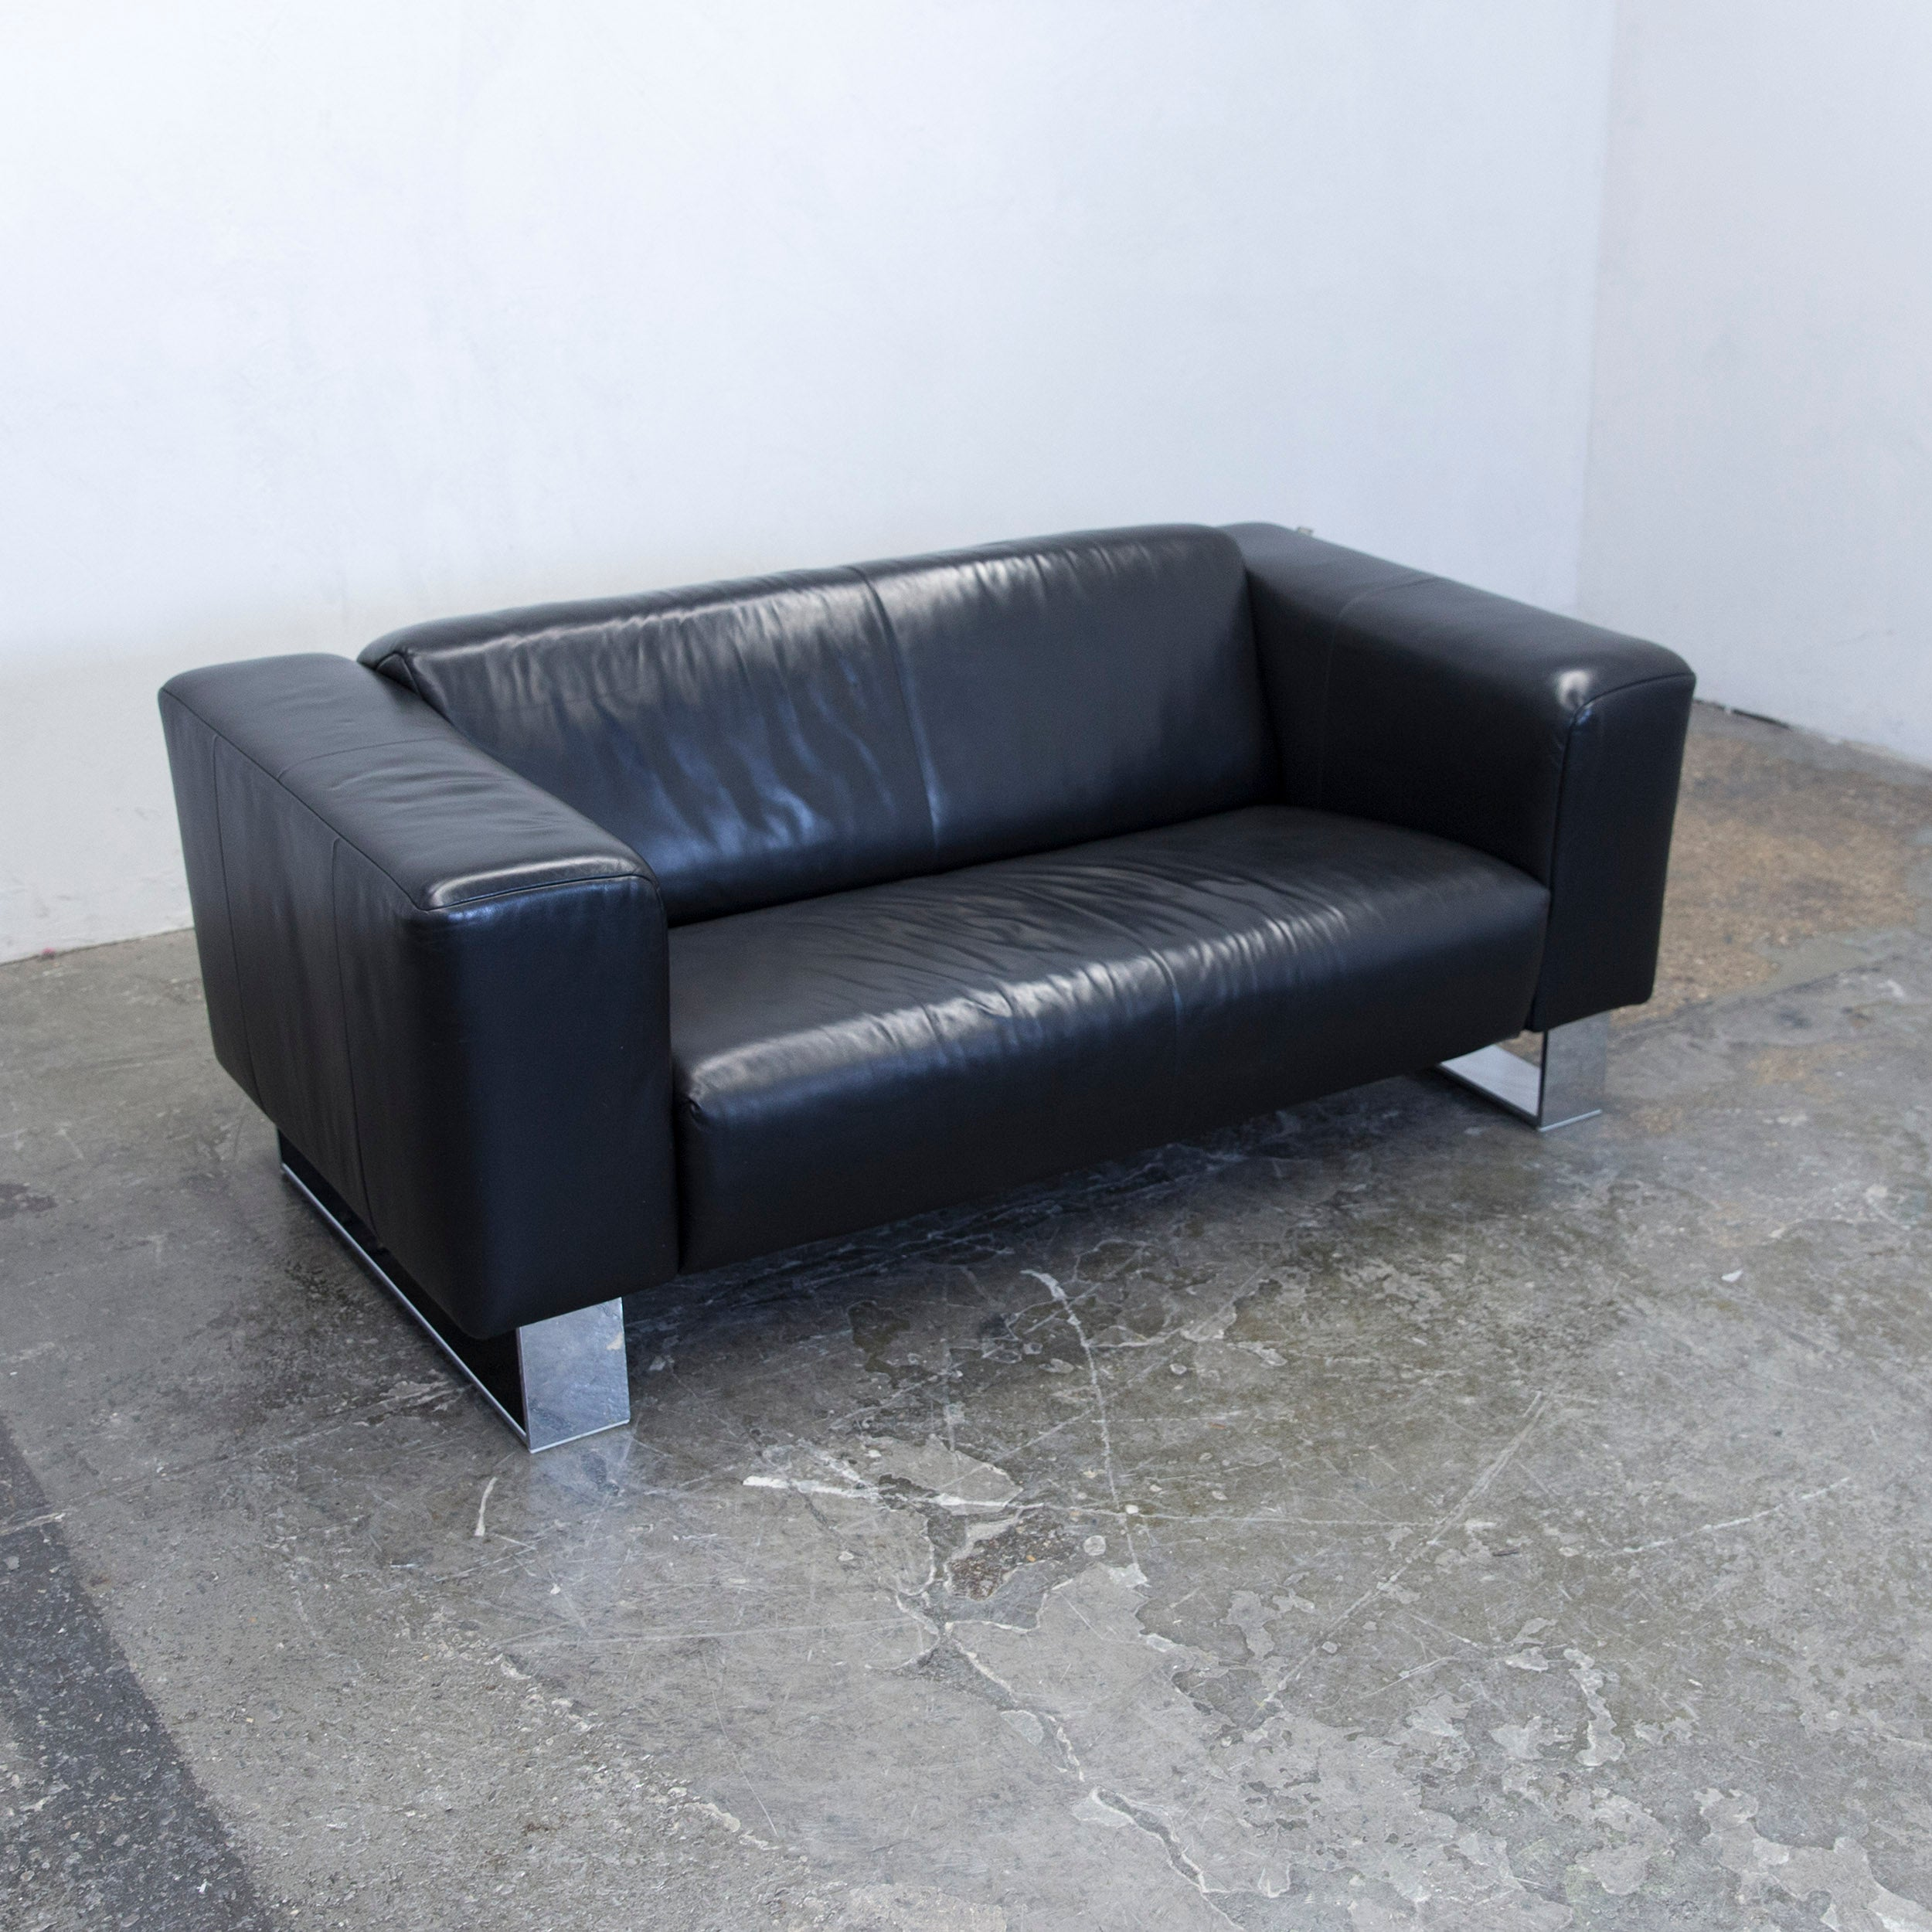 Benz Couch Rolf Benz Bmp Designer Sofa Leather Black Two Seat Couch Modern